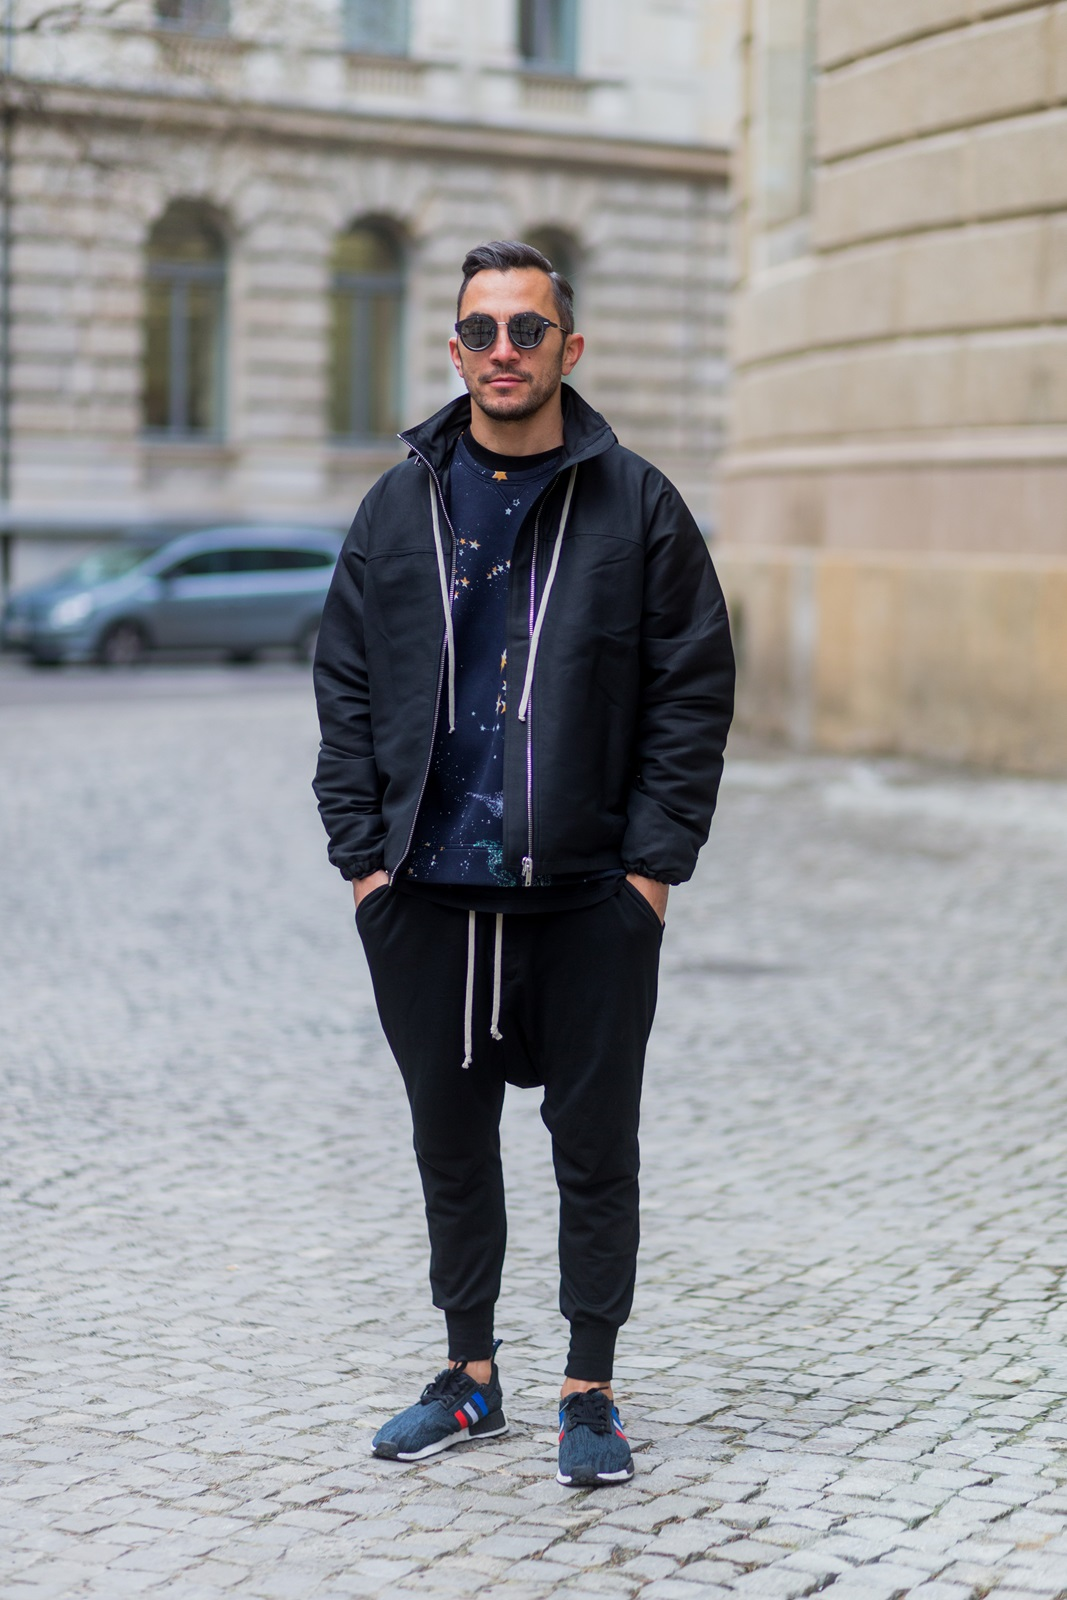 BERLIN, GERMANY - JANUARY 19: Dima wearing RICK OWENS Zipped Jacket, Valentino Cosmo Printed sweatshirt, Rick Owens Cotton harem pants, Adidas NMD R1 sneaker, Dior Magnitude Sunglasses during the Mercedes-Benz Fashion Week Berlin A/W 2017 at Kaufhaus Jandorf on January 19, 2017 in Berlin, Germany. (Photo by Christian Vierig/Getty Images) *** Local Caption *** Dima